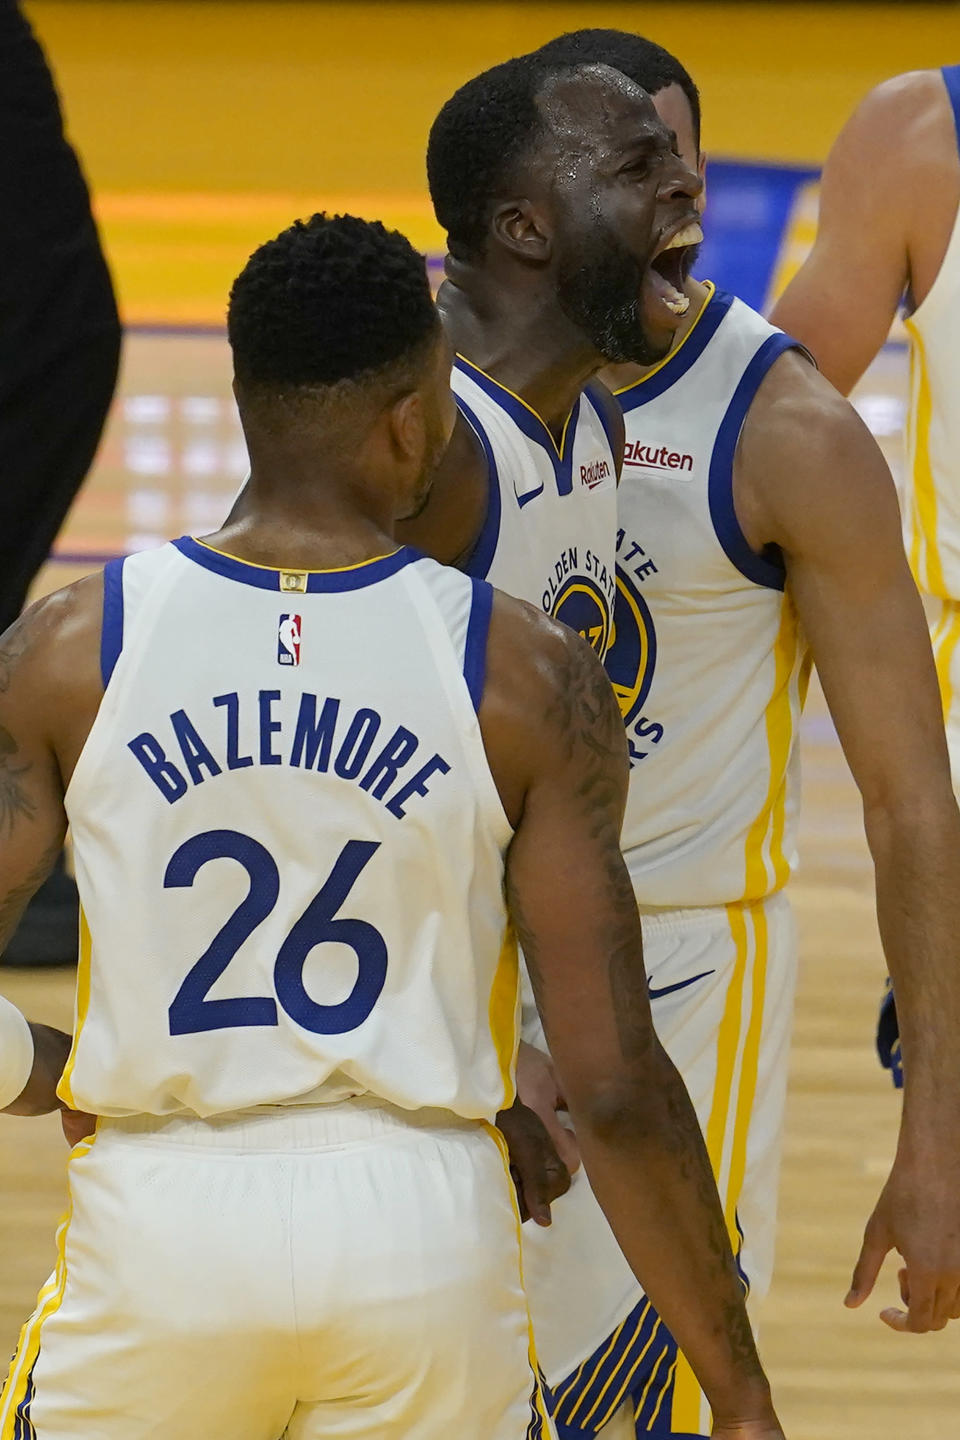 Golden State Warriors forward Draymond Green, middle, reacts between forward Kent Bazemore (26) and guard Mychal Mulder after a Memphis Grizzlies foul during the first half of an NBA basketball game in San Francisco, Sunday, May 16, 2021. (AP Photo/Jeff Chiu)